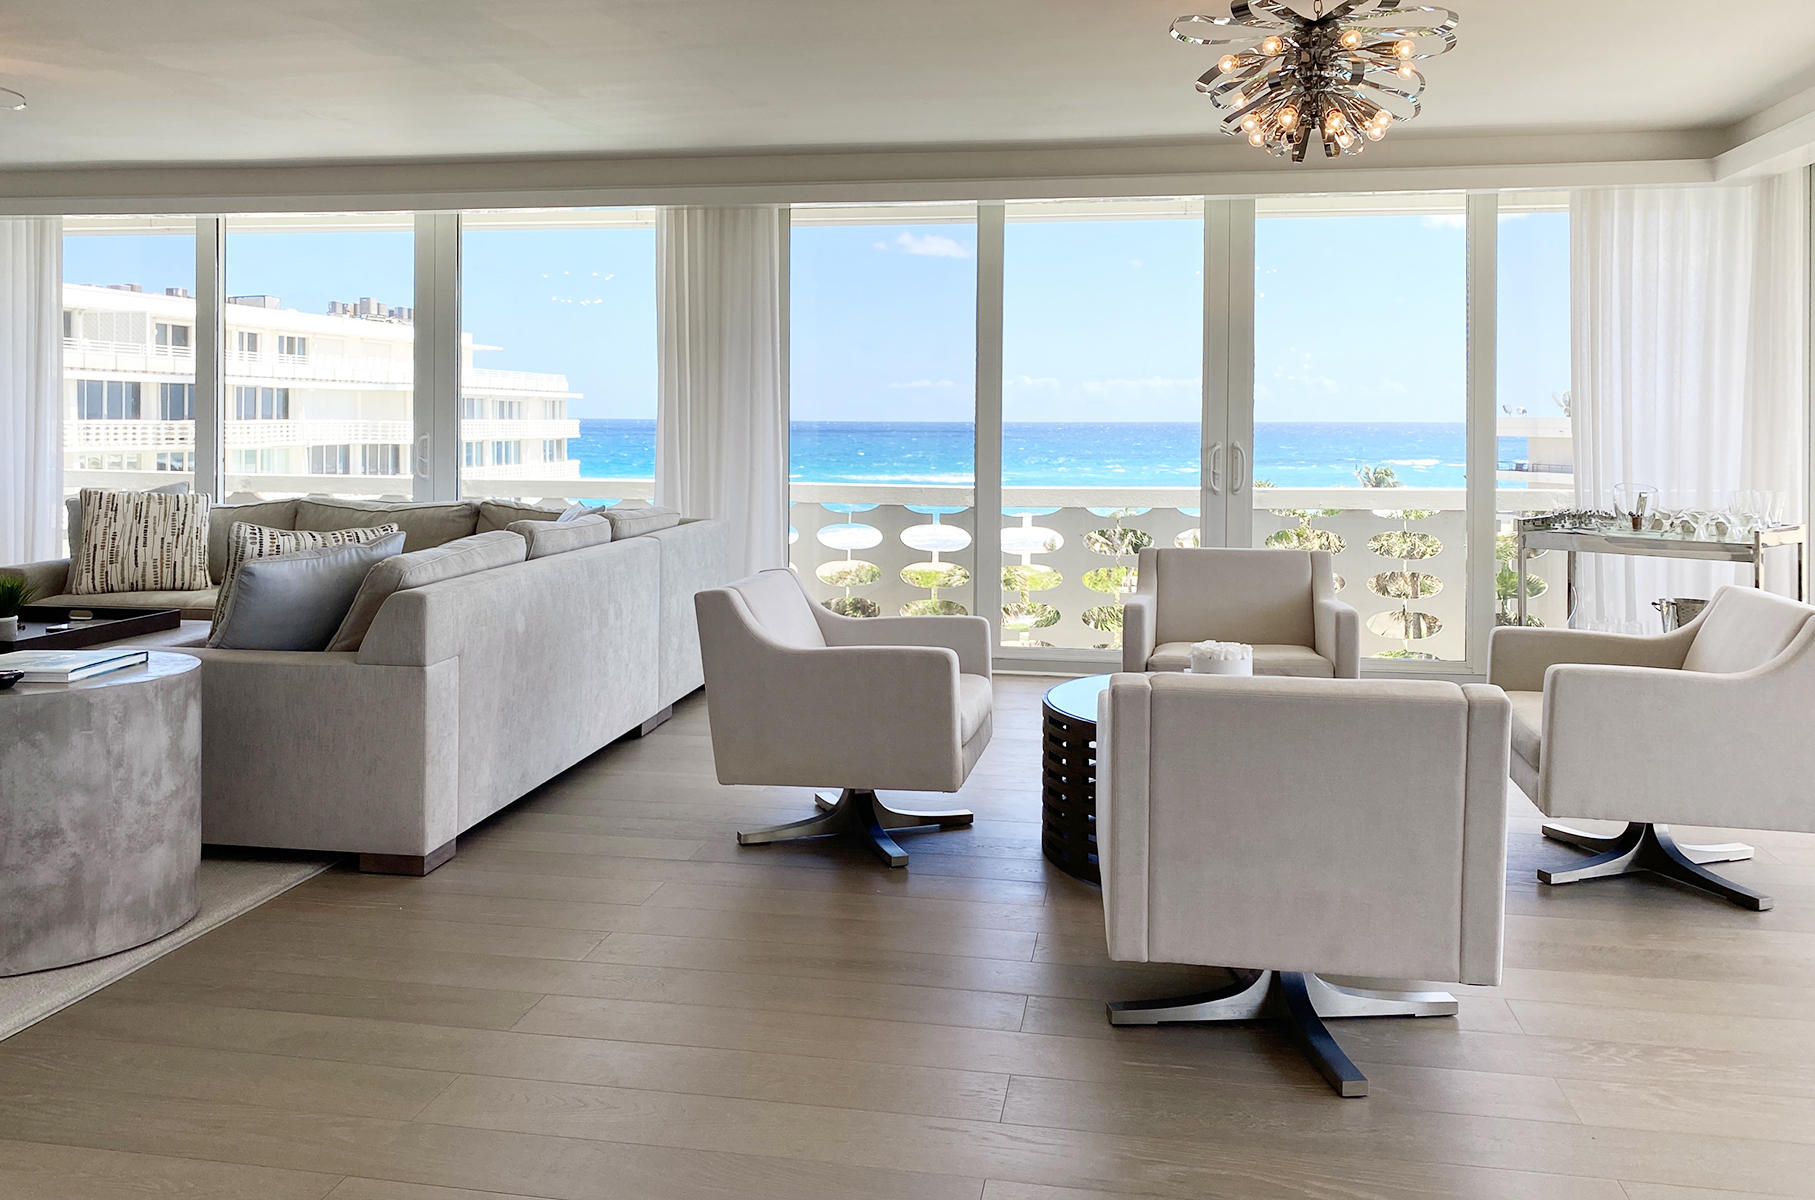 Gorgeous Ocean Views from every room! Enjoy the size, scale, and comfort of a private home with all the conveniences of a premier full service condominium. This spectacular 4,000+ square foot residence is comprised of 4 bedroom suites, 5.5 baths, including a dual in the owners suite and a large office/media room. Exquisite down to the studs renovation with tasteful finishes throughout. Delight in stunning sunrises and sensational sunsets from sun filled east, south, and west exposures. Large poolside cabana and private garage offered separately. Prime In Town location.